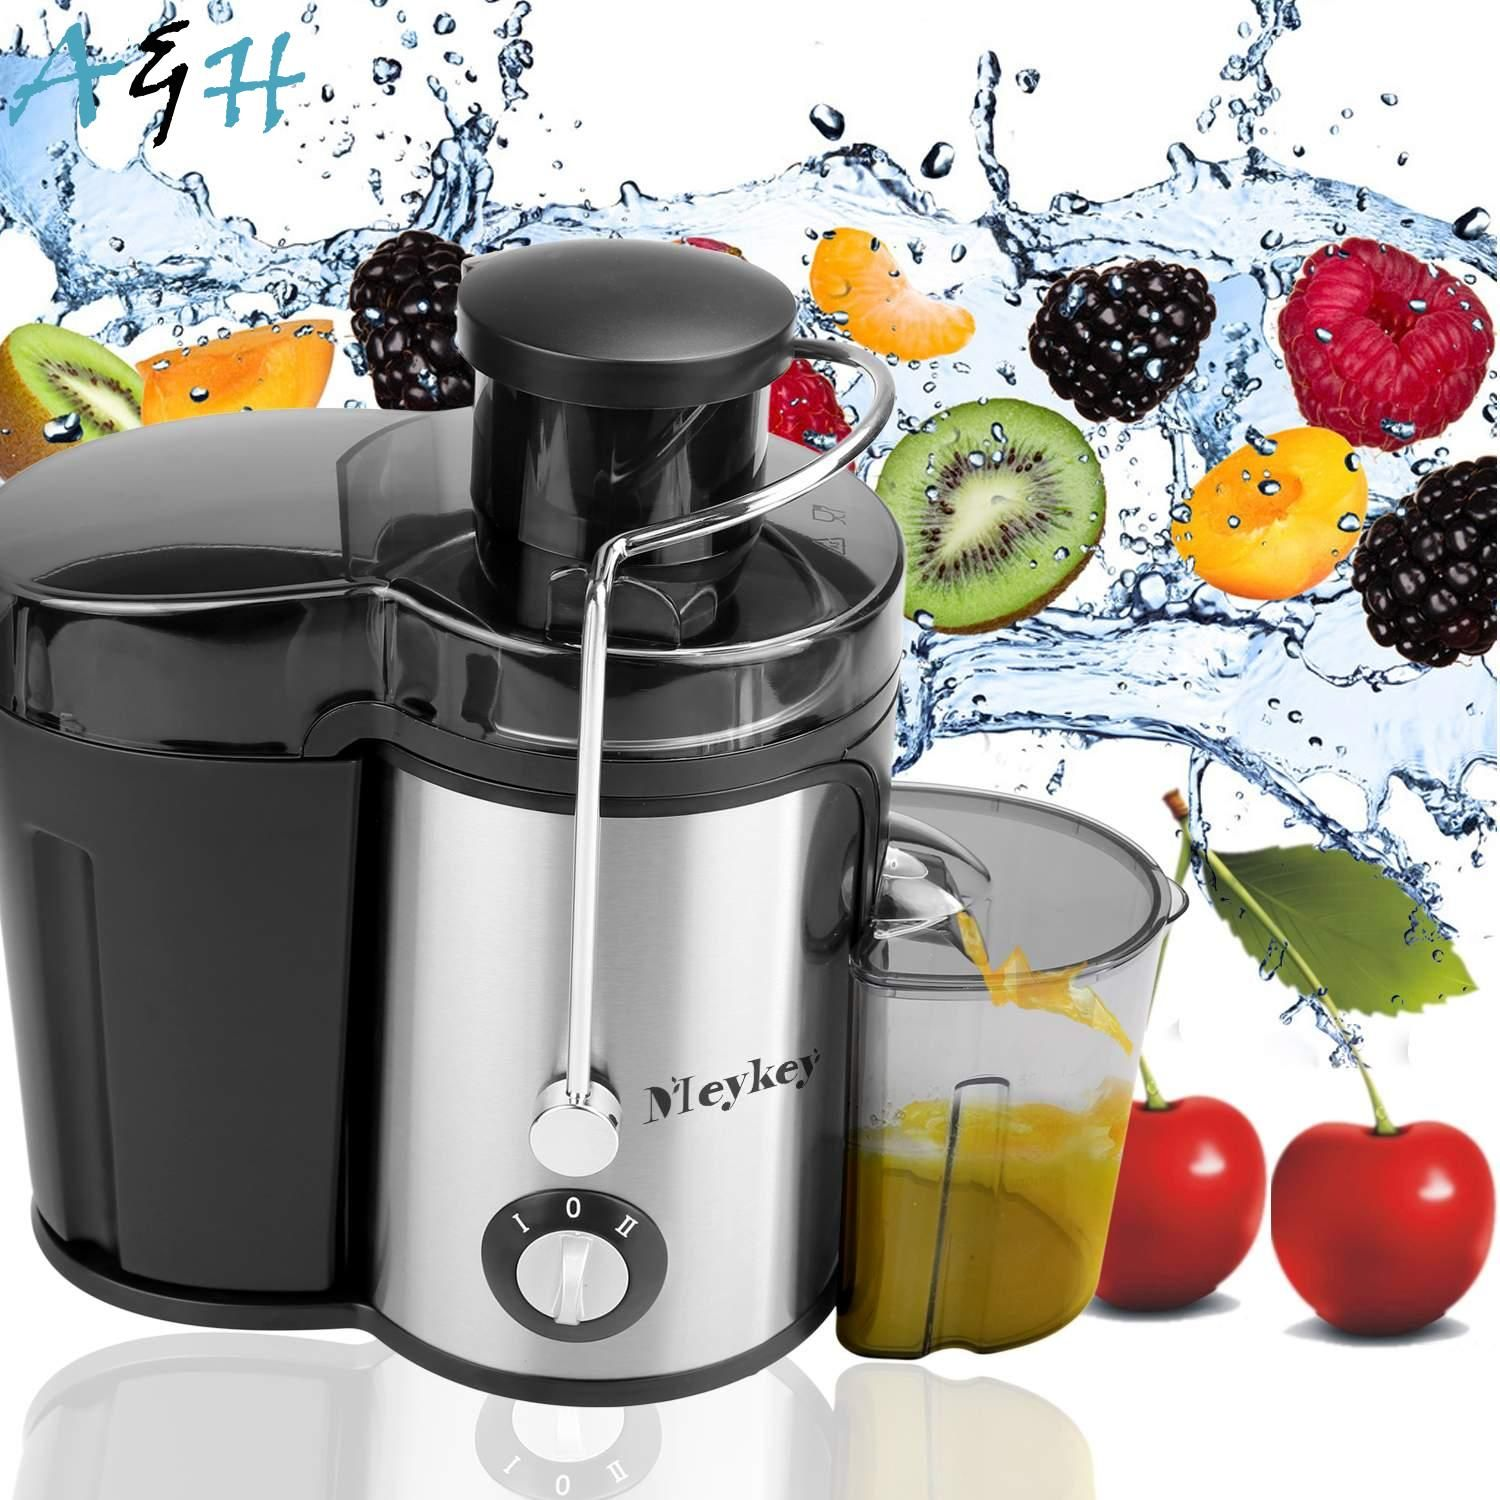 500ml Juicer Automatic Electric Home Fruit Juicer Juice Extractor Two Speed Adjustable Juicer machine